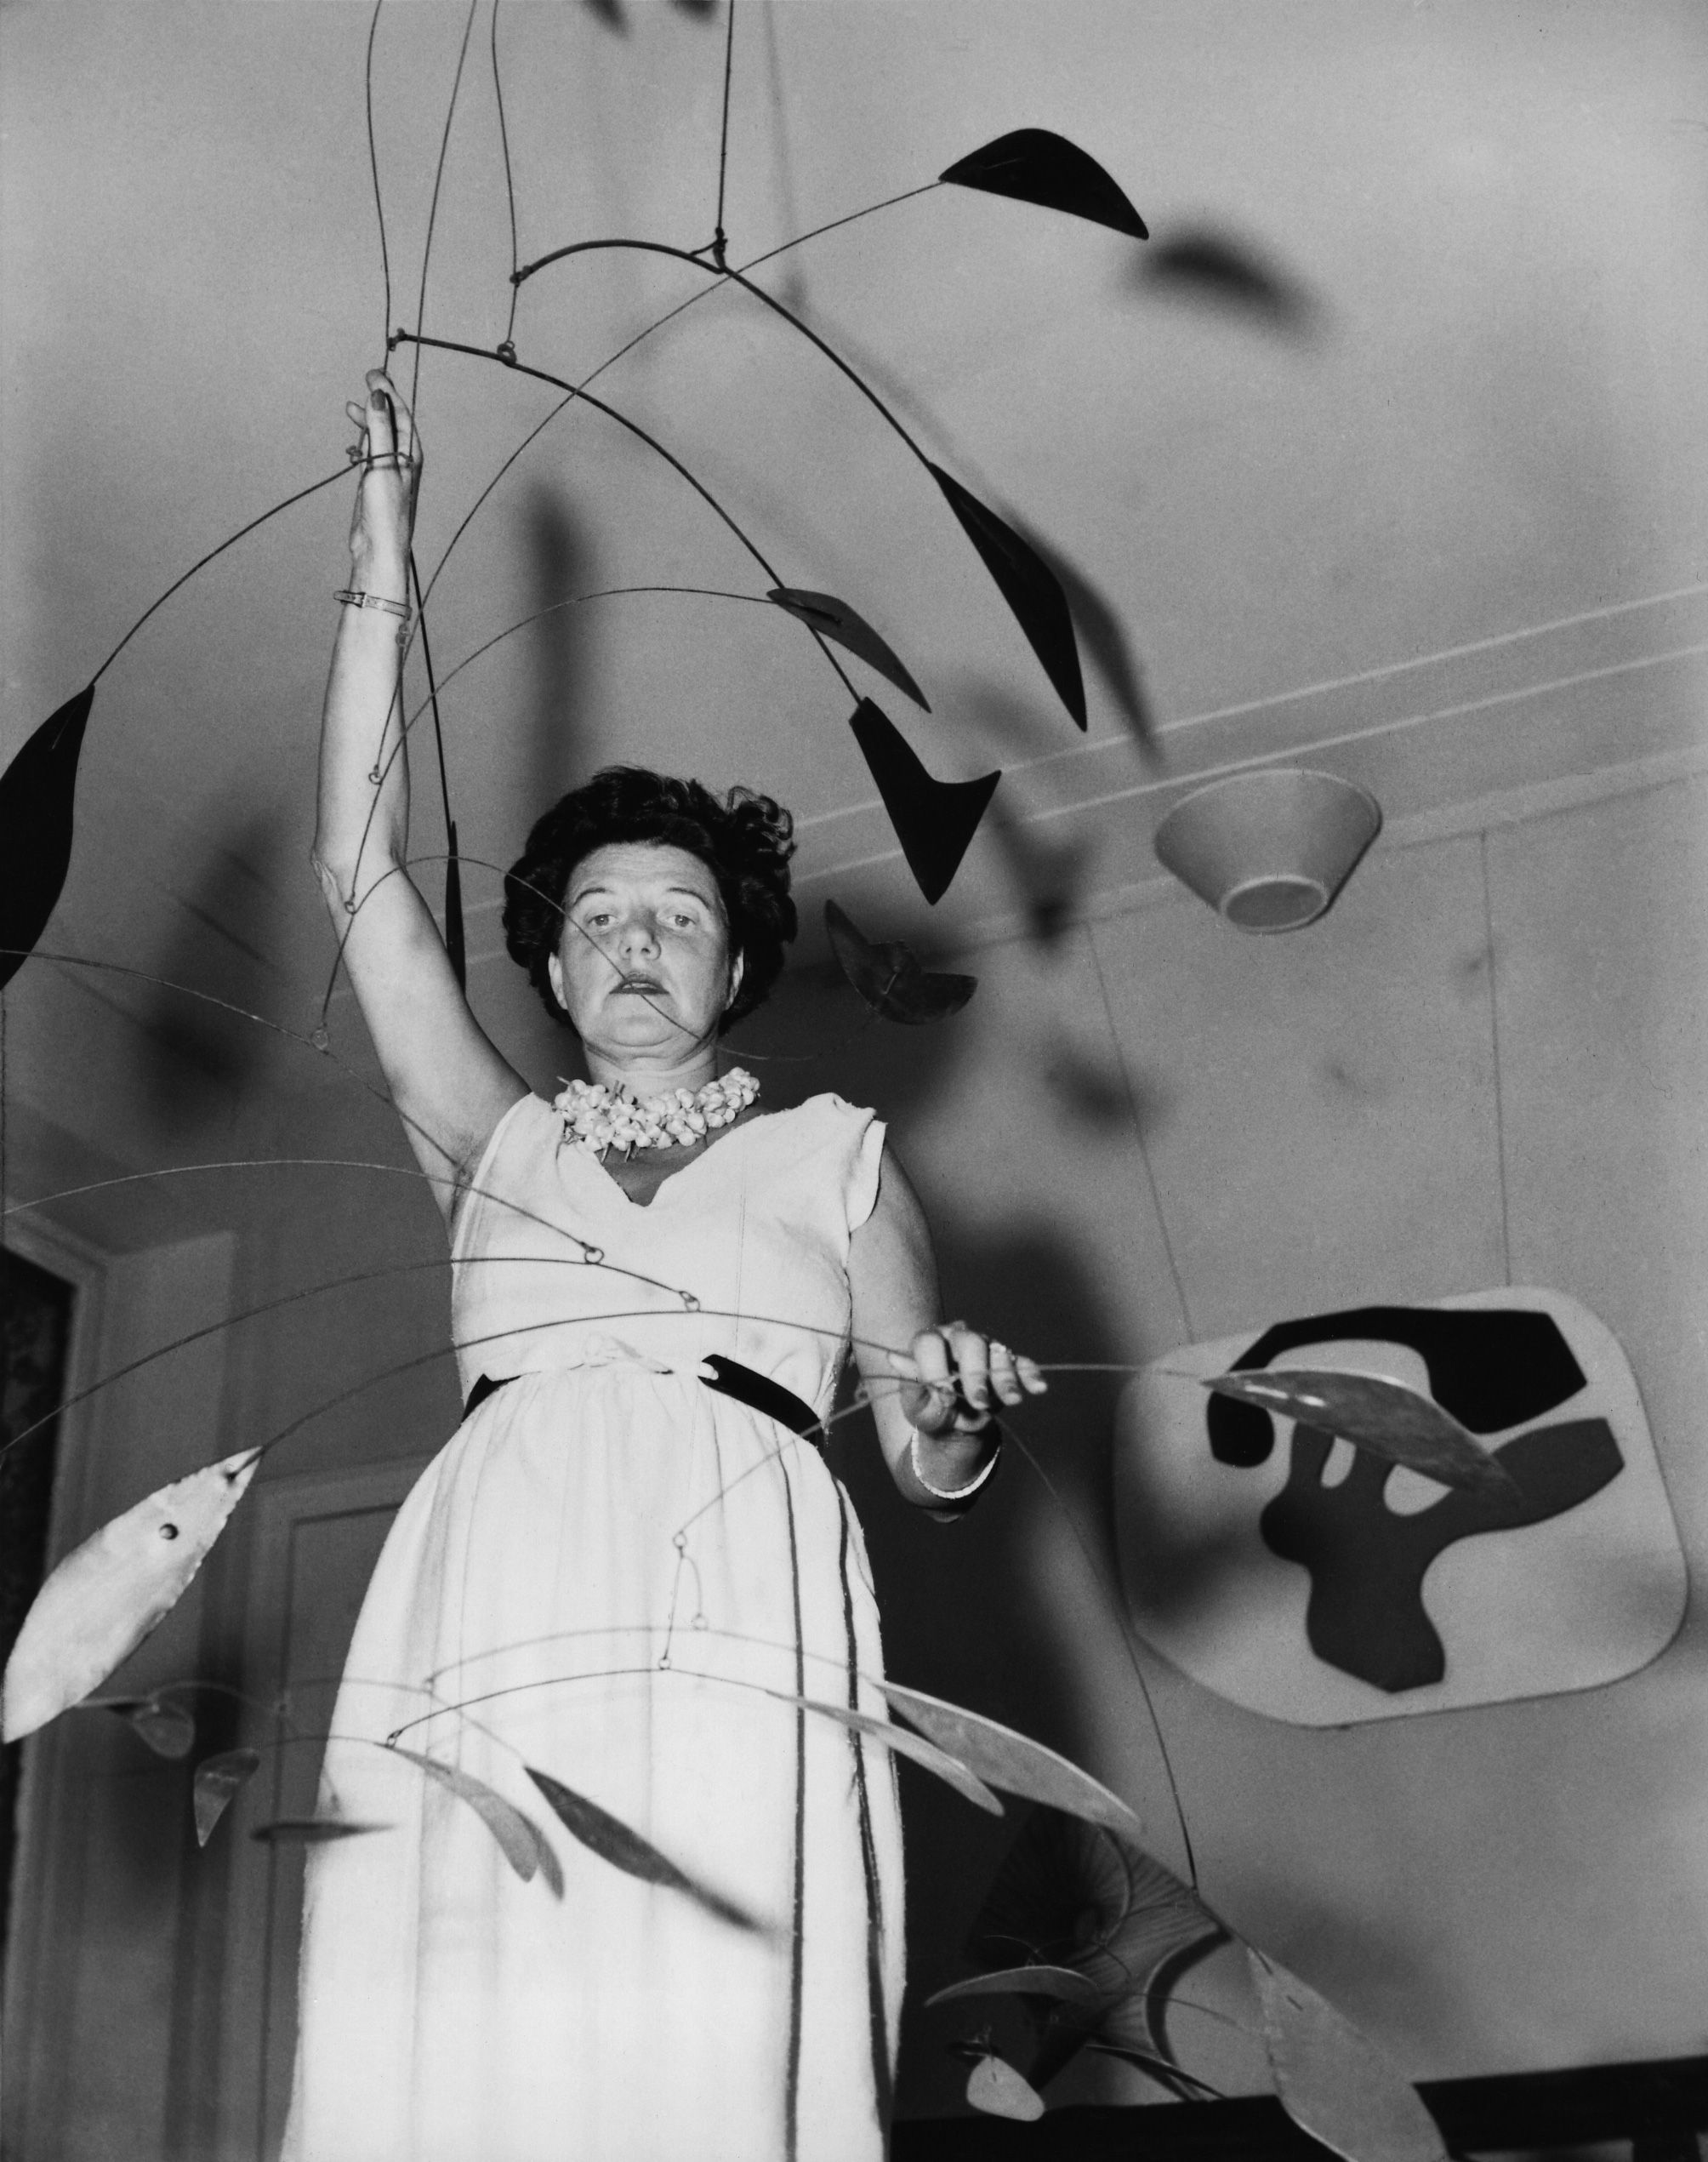 dogwoof-documentary-peggy-guggenheim-art-addict-2.jpg